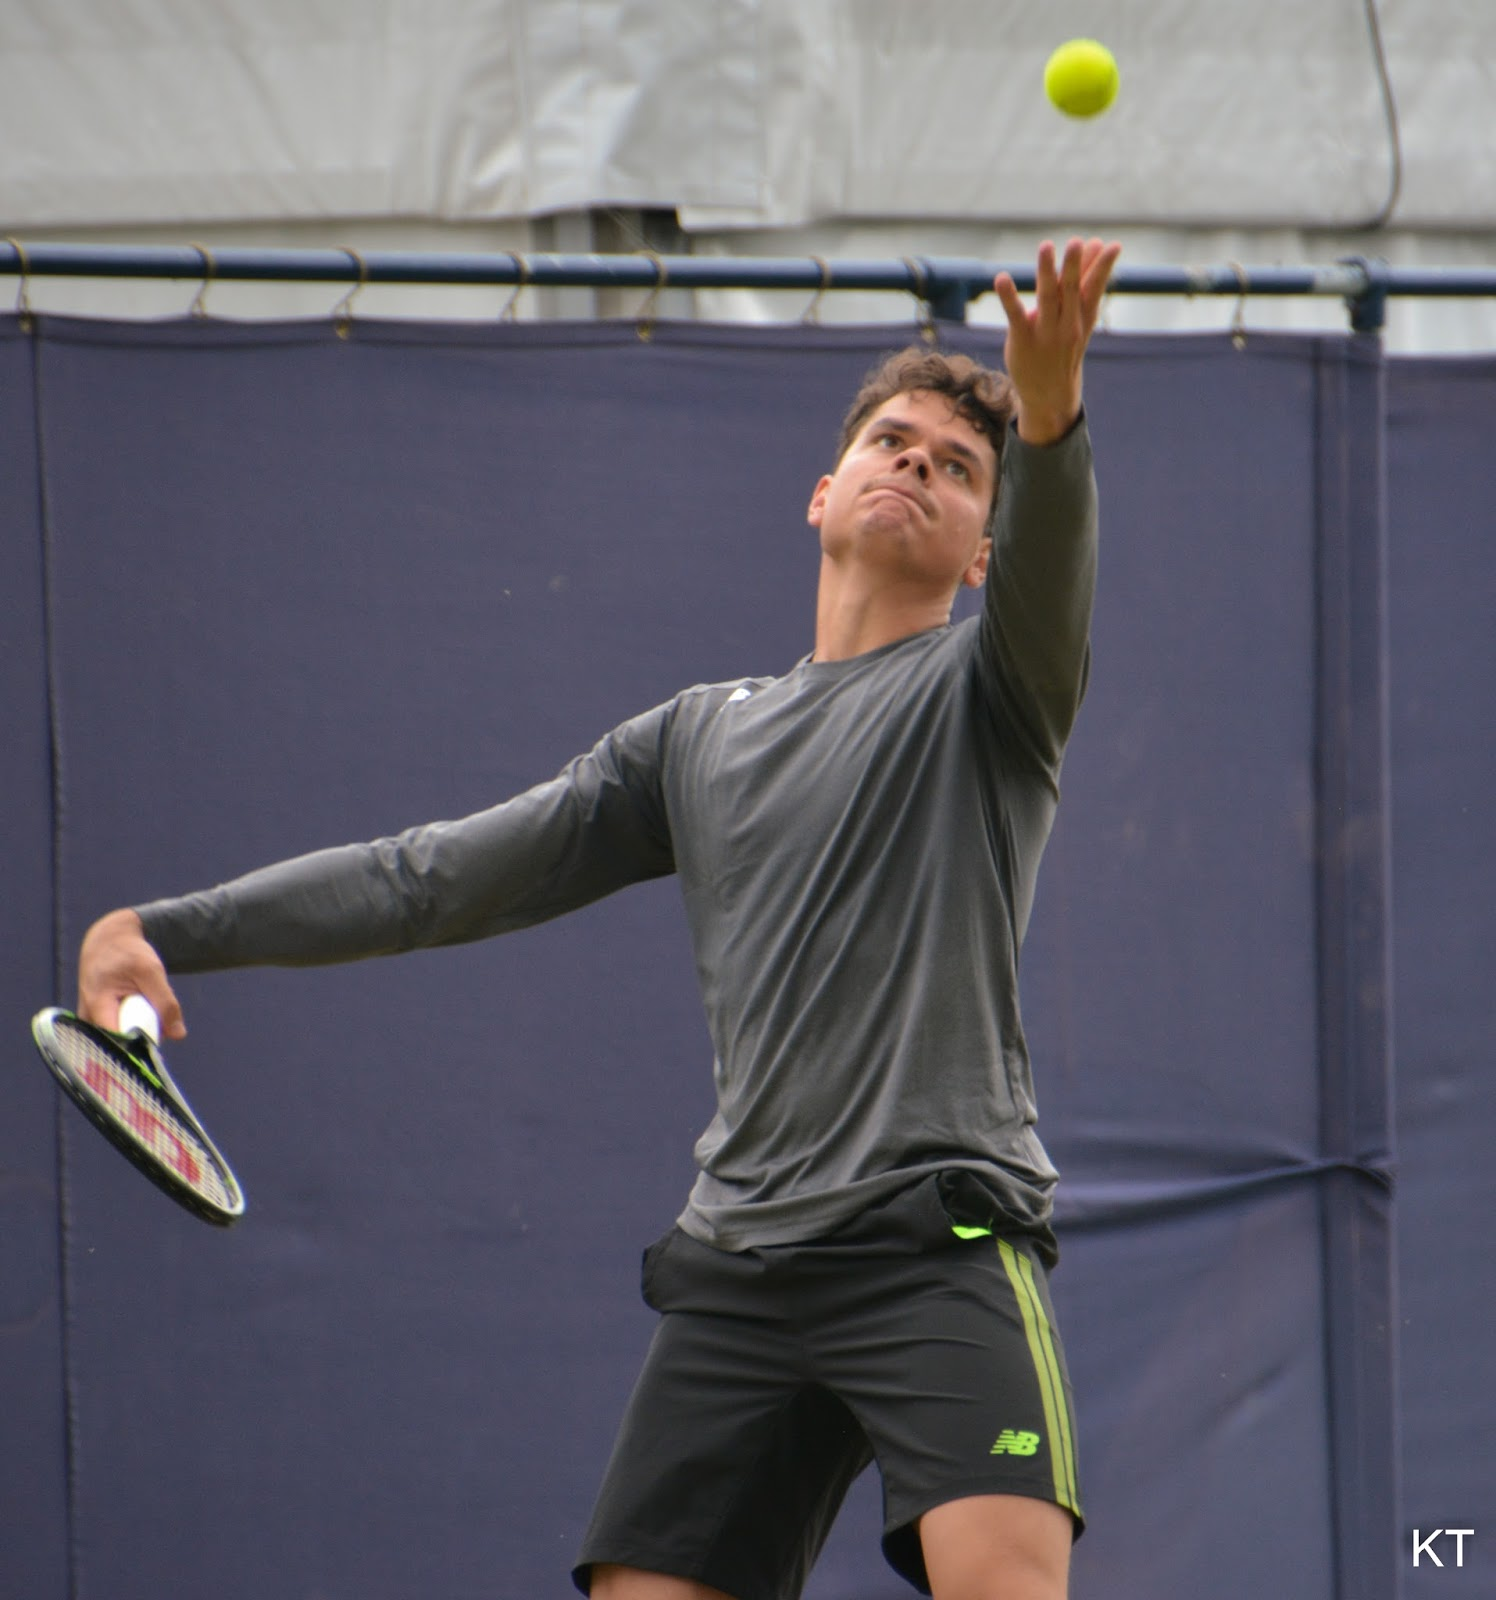 Offside Sports: Raonic Will Begin New Season With New Coach Ljubicic Serve